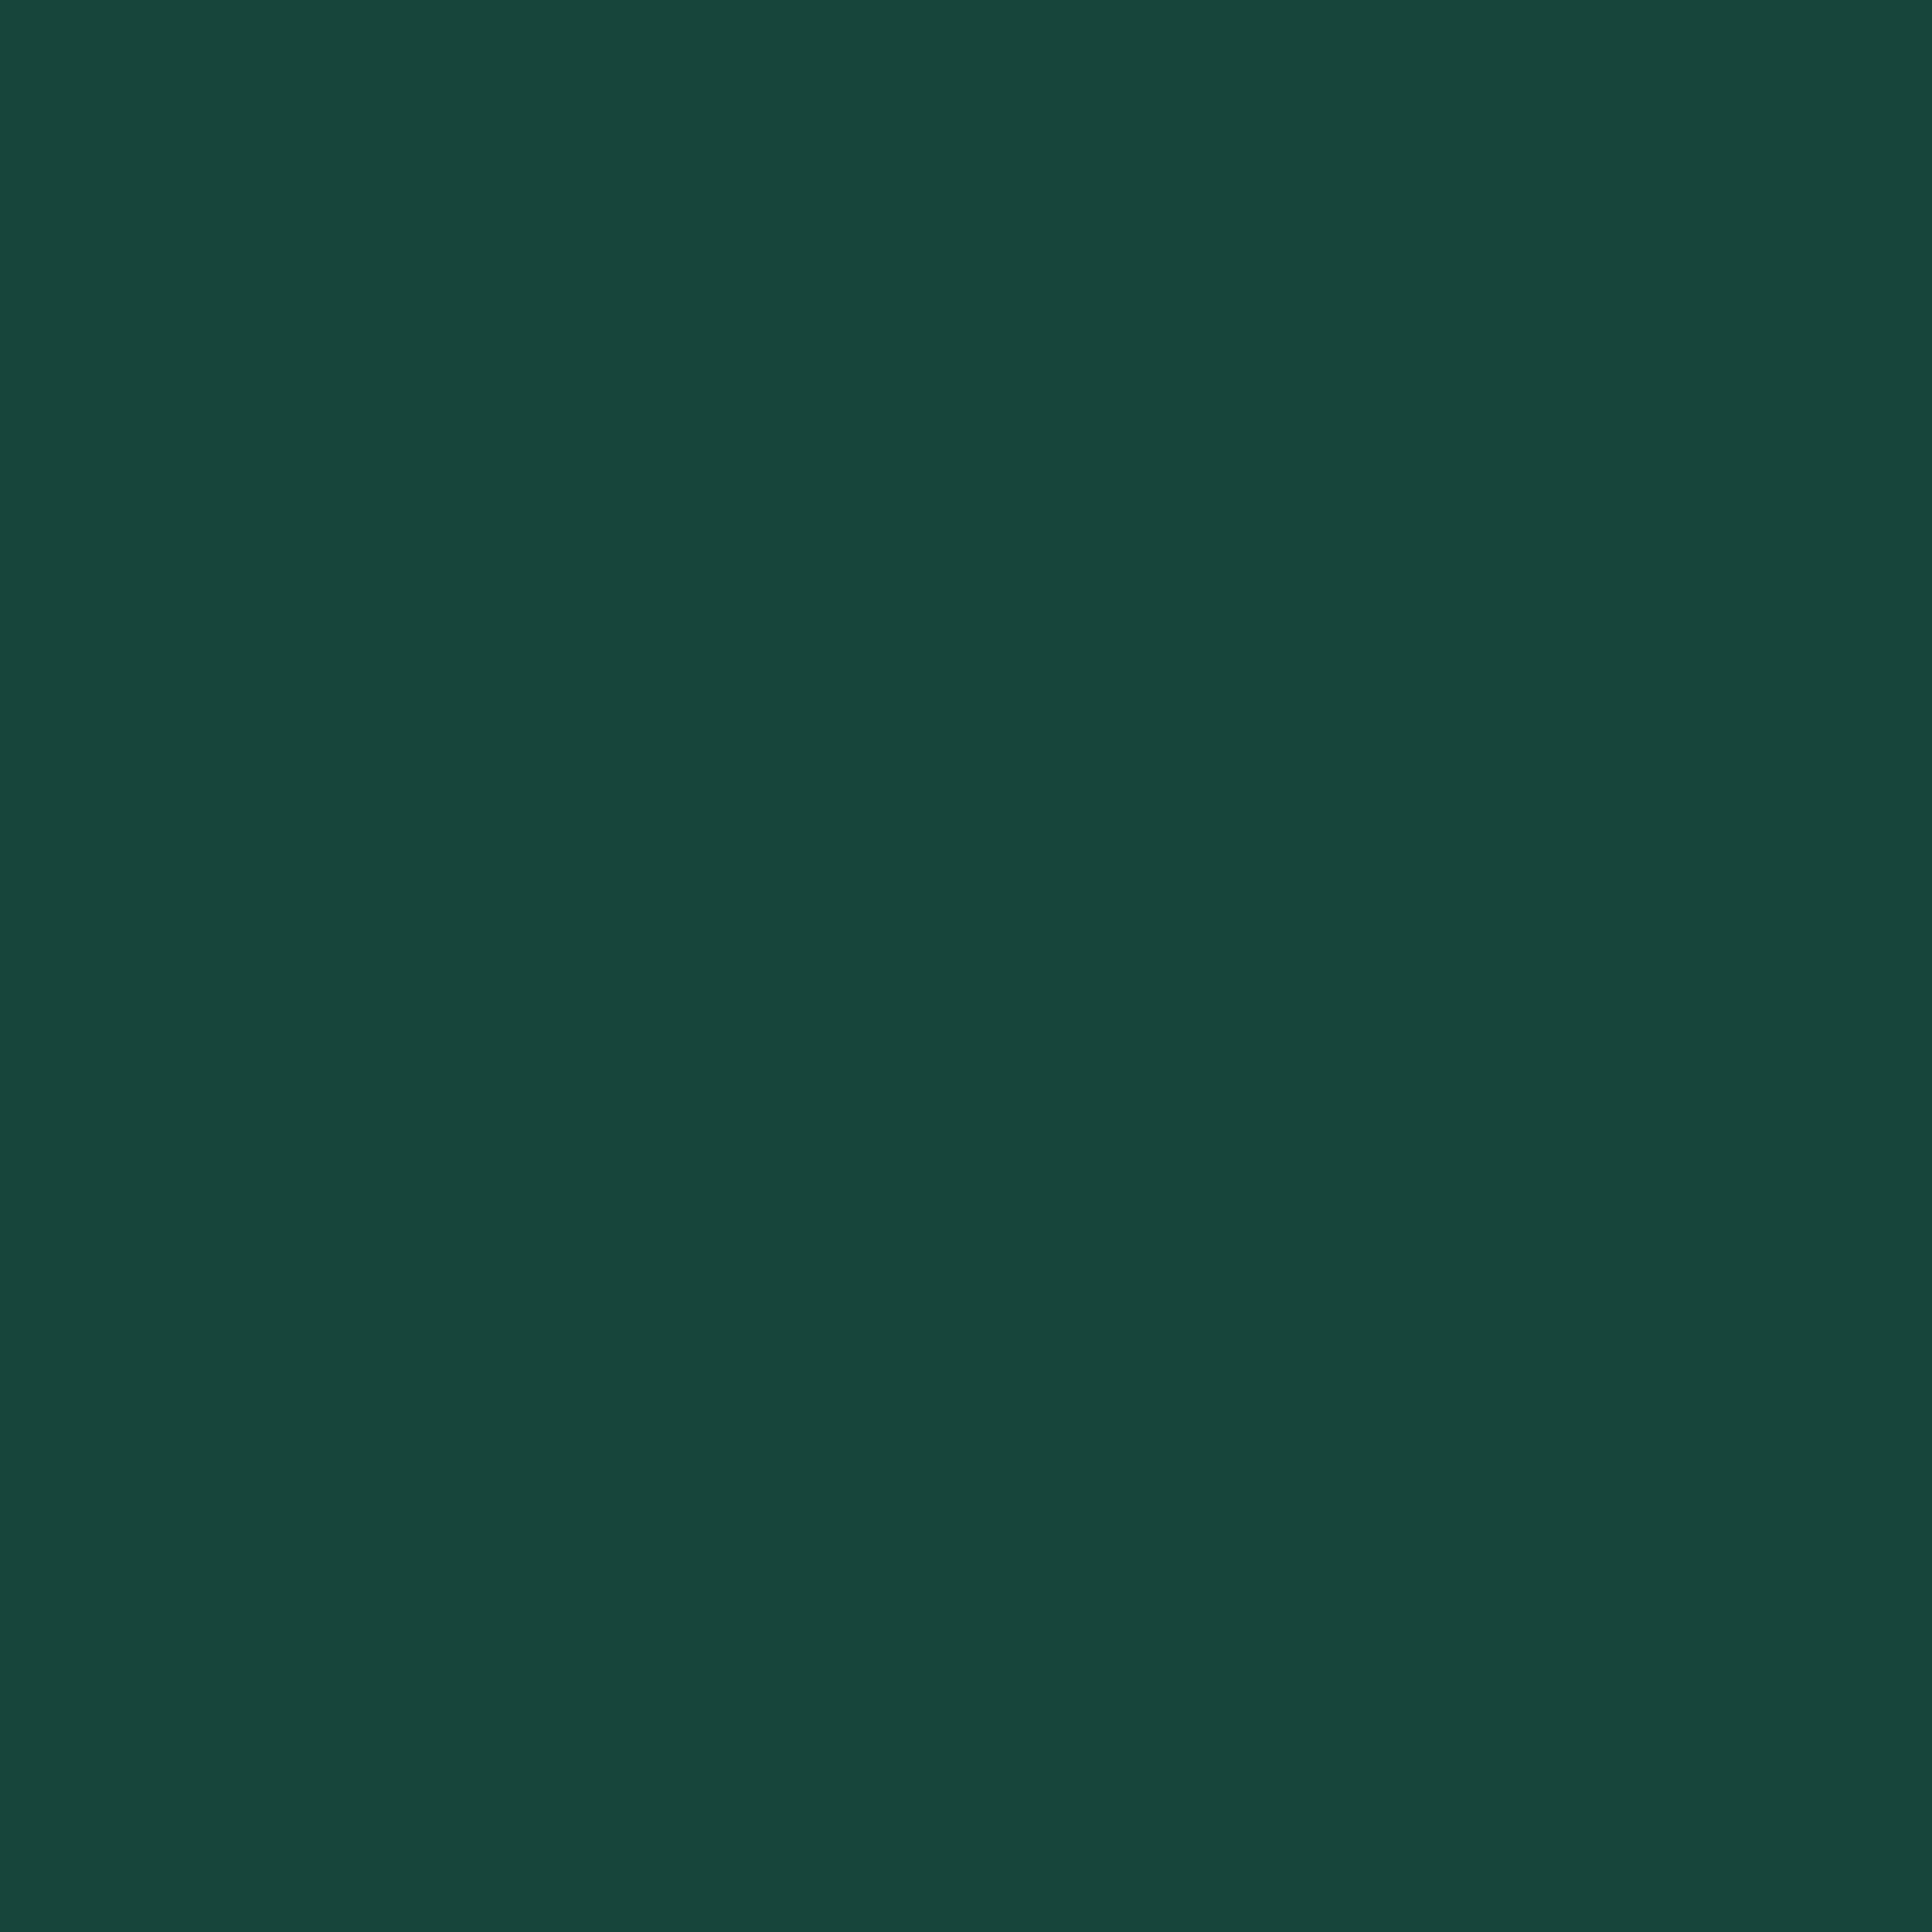 2048x2048 MSU Green Solid Color Background